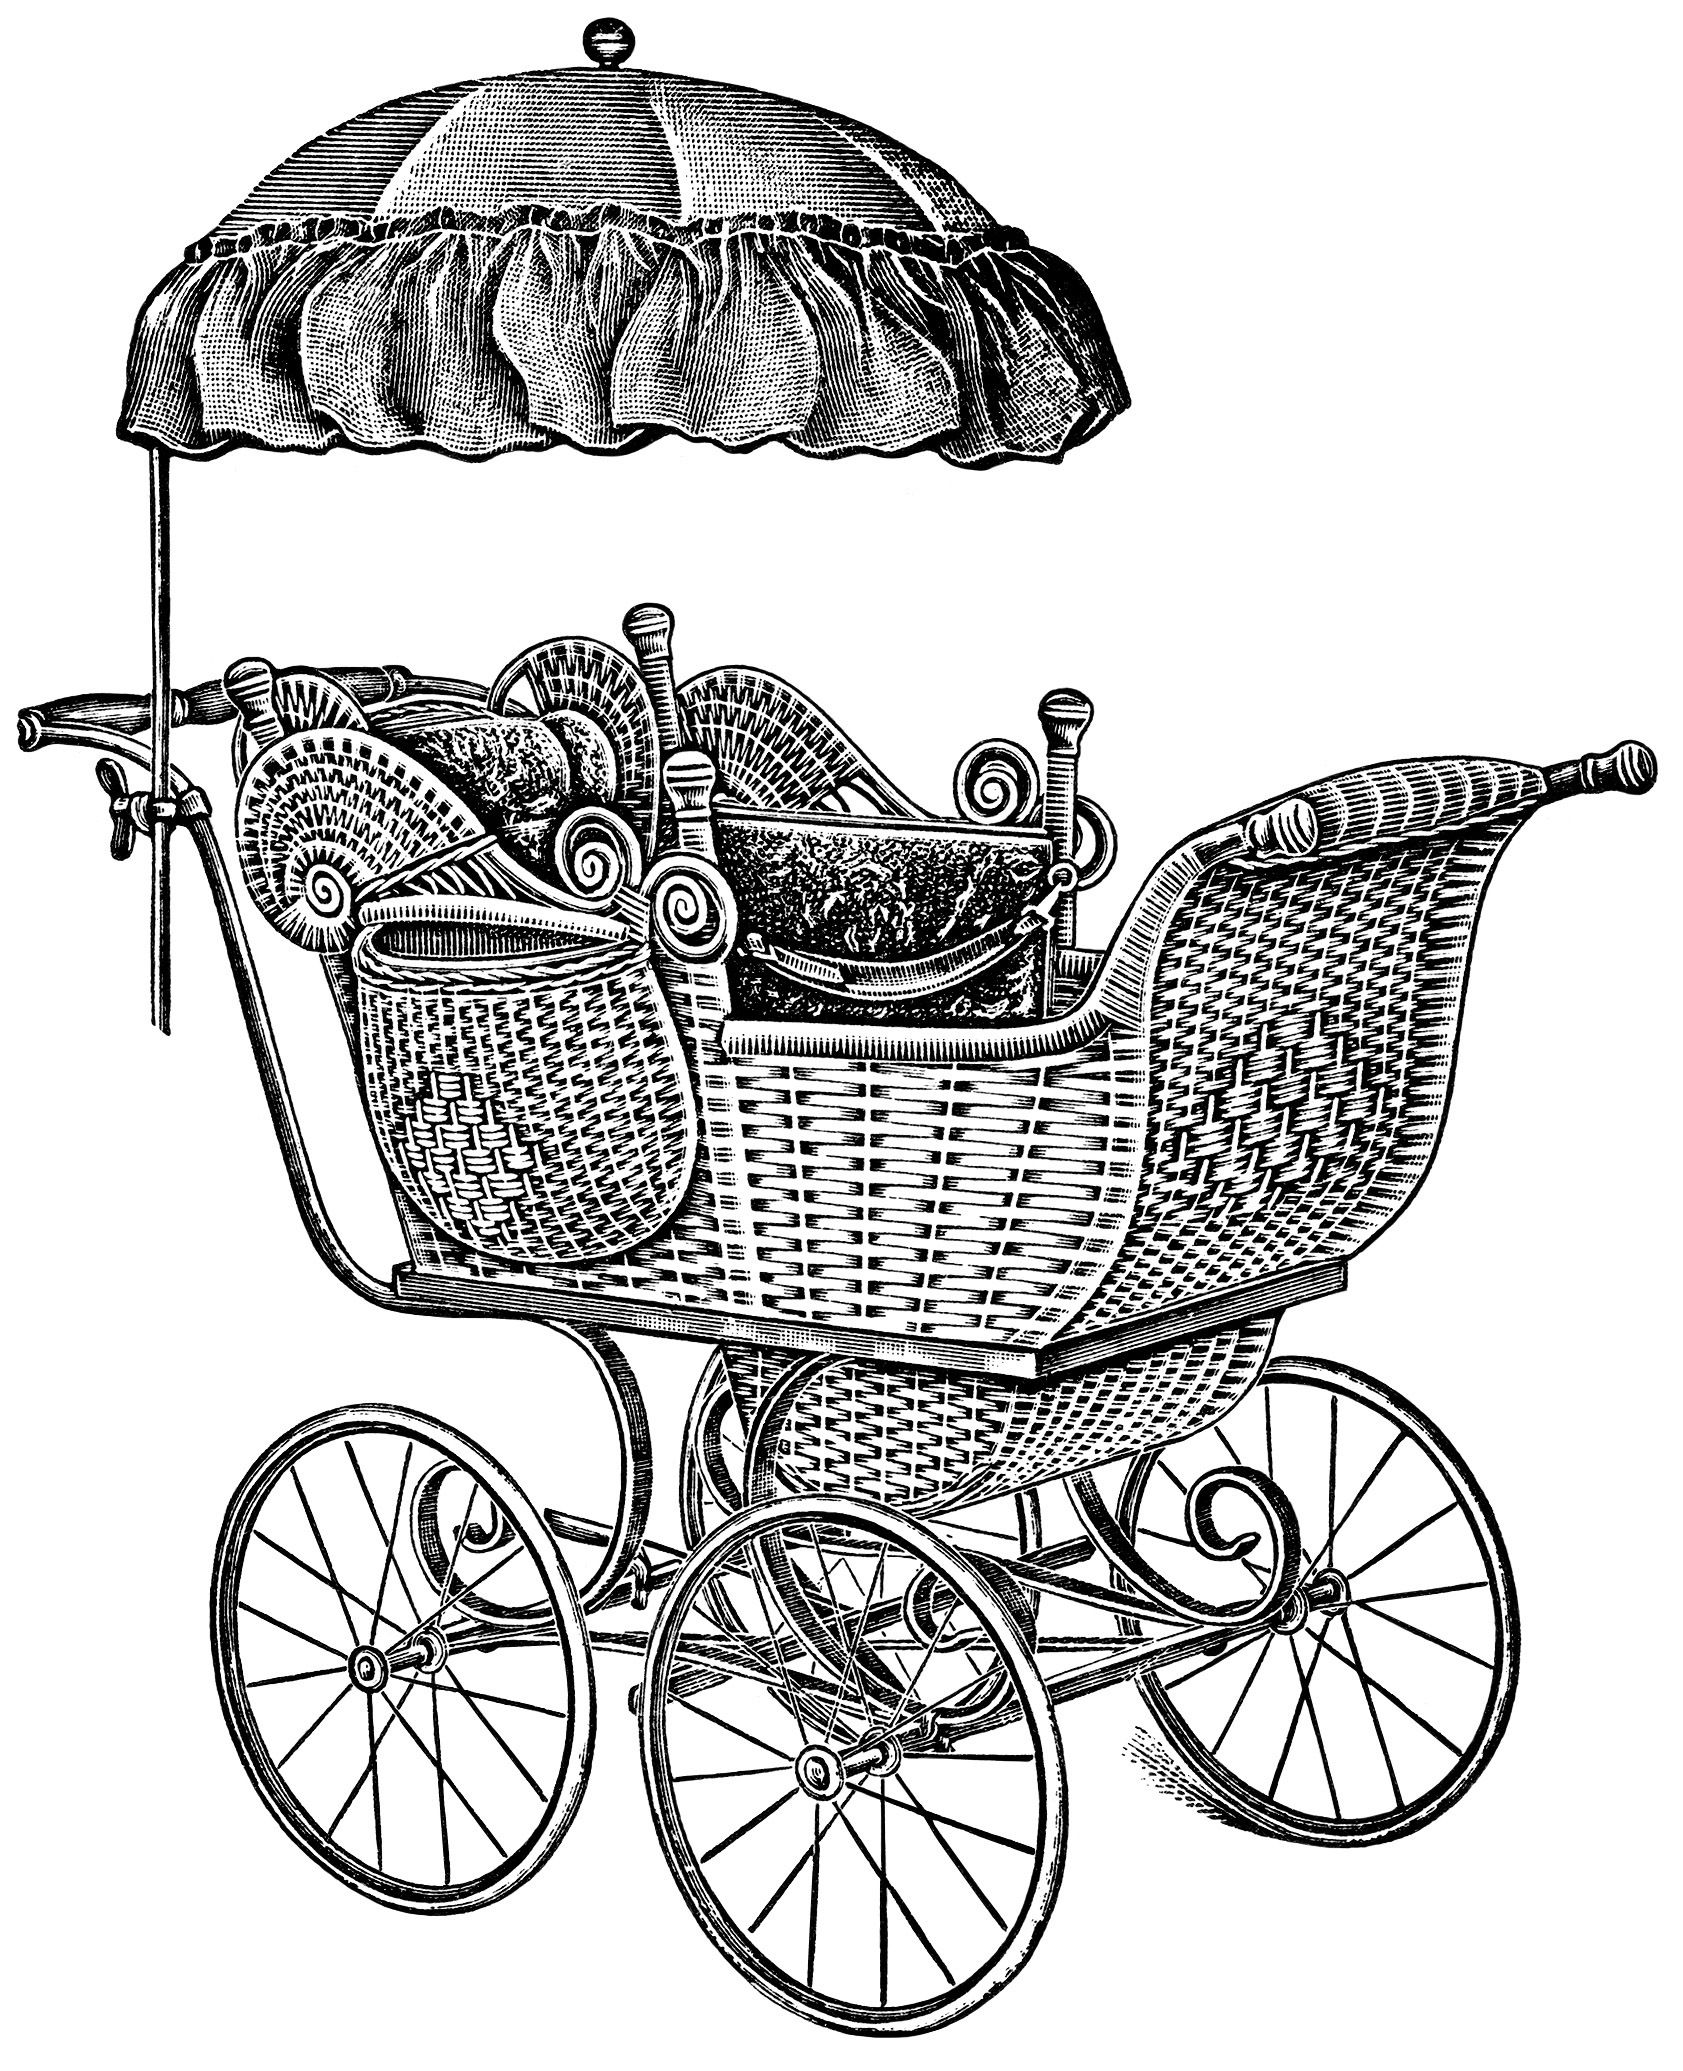 hight resolution of old catalogue page vintage baby clip art antique baby carriage illustration free black and white clipart pram carriage graphic parasol covered baby